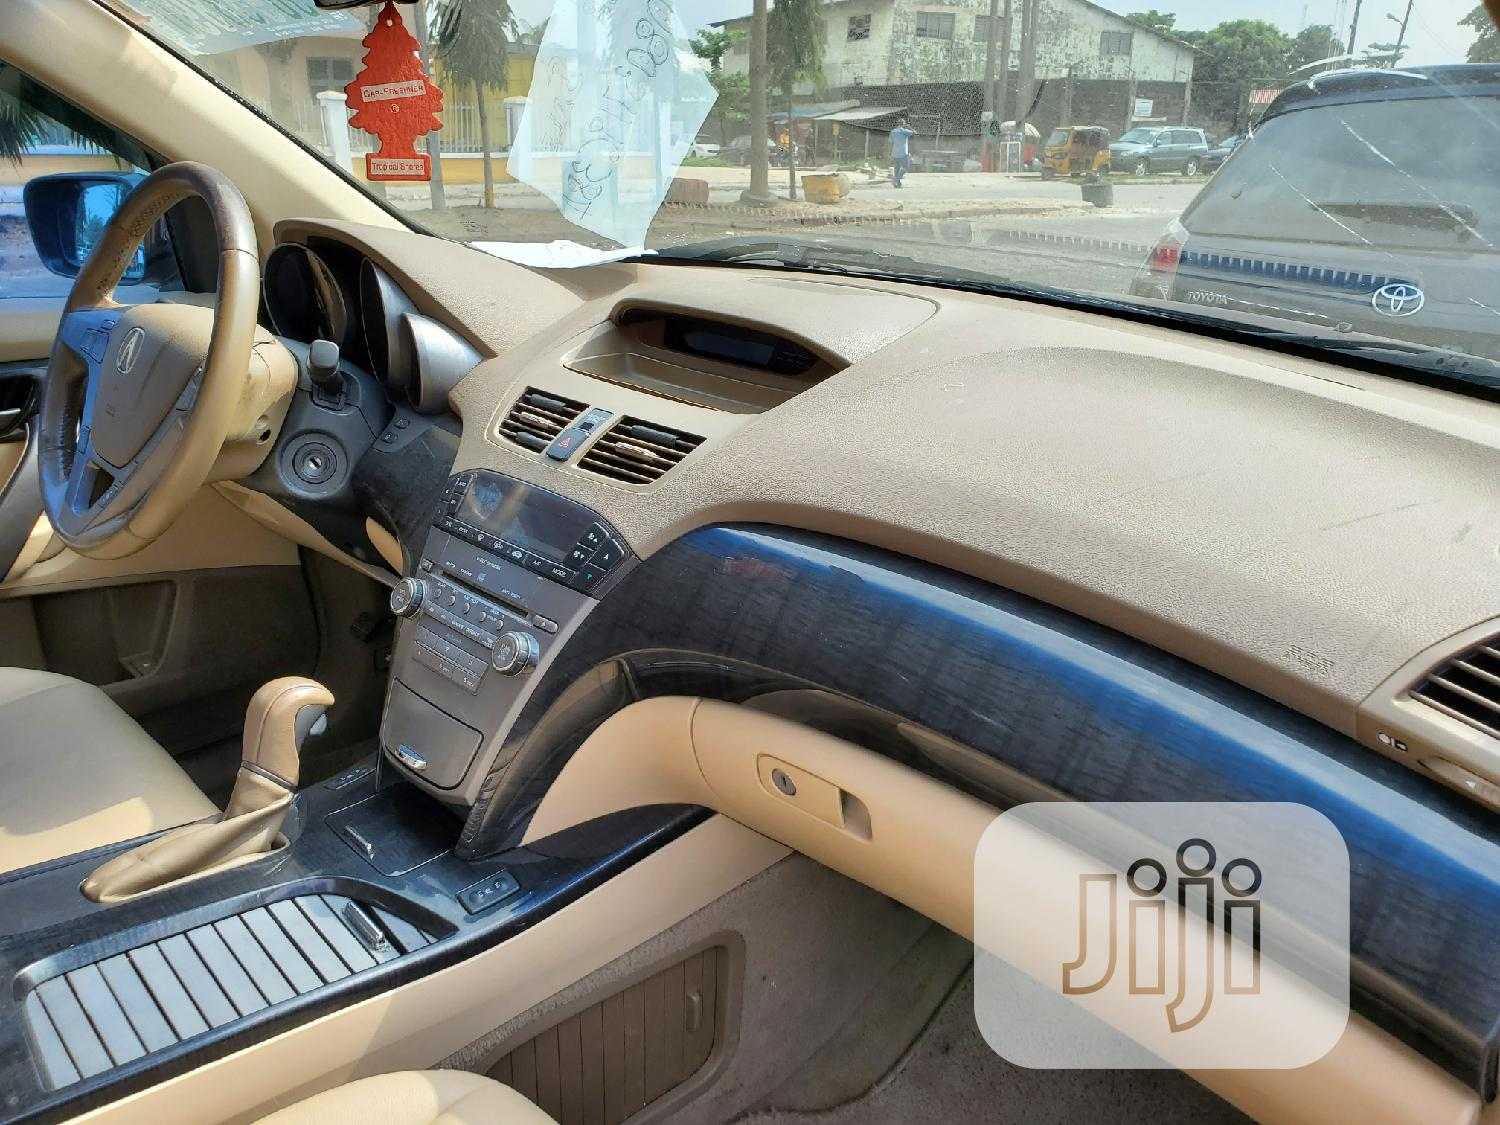 Acura MDX 2007 SUV 4dr AWD (3.7 6cyl 5A) Red | Cars for sale in Amuwo-Odofin, Lagos State, Nigeria